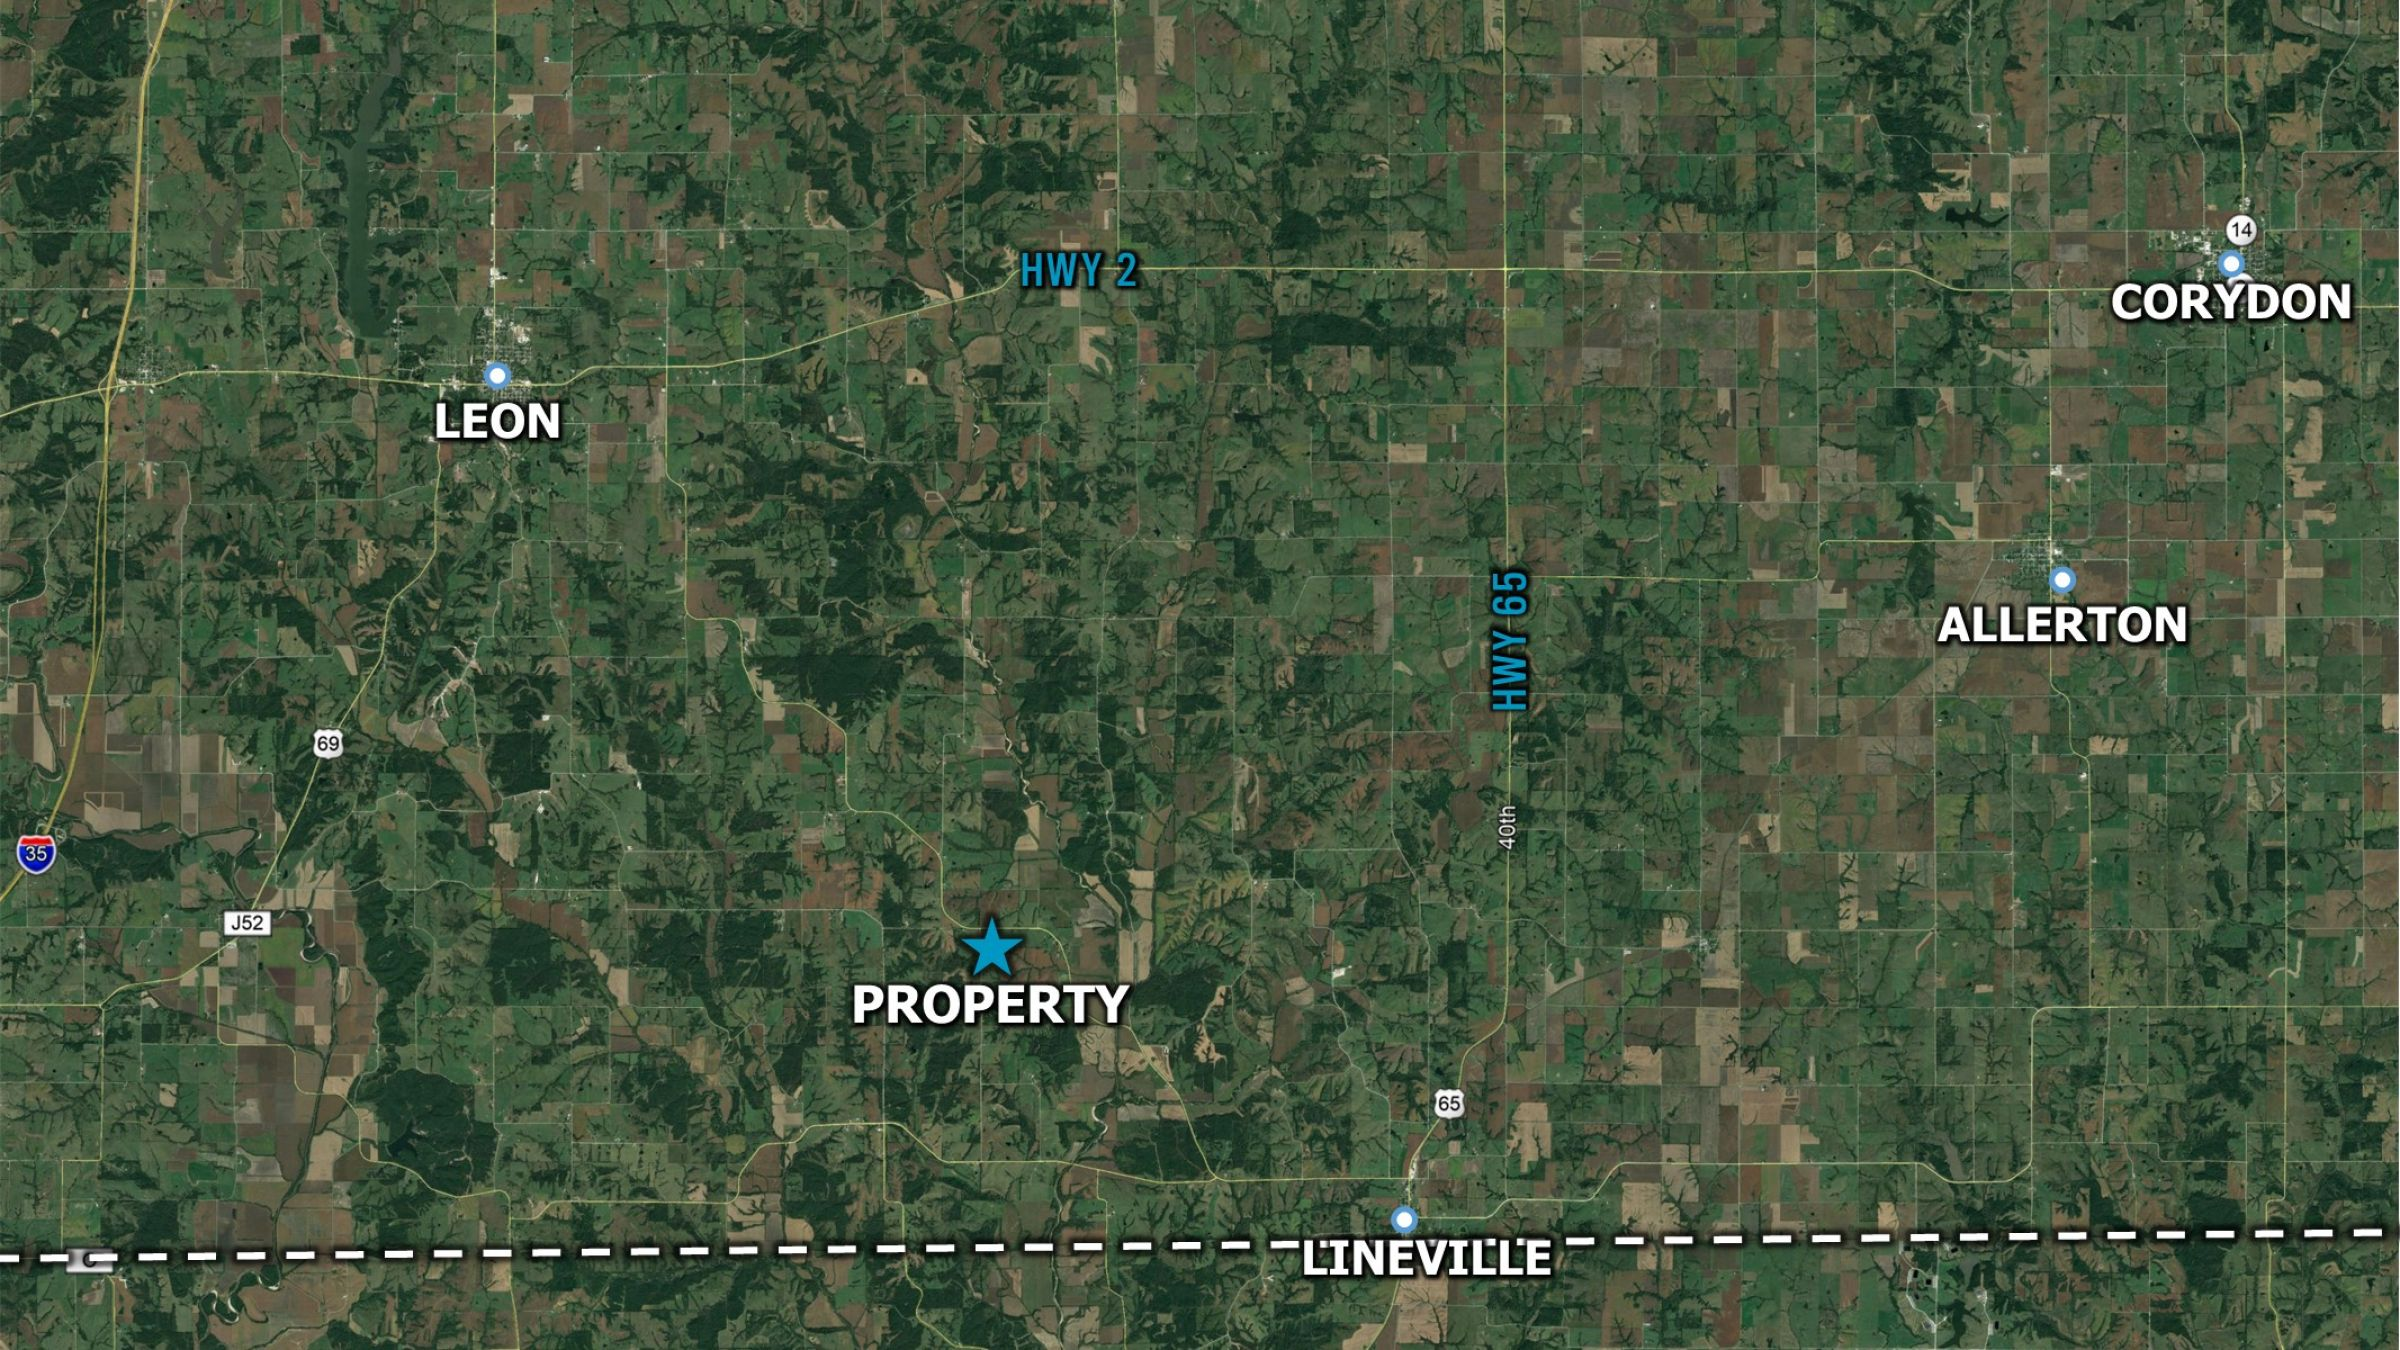 land-decatur-county-iowa-39-acres-listing-number-15495-4-2021-04-27-215422.jpg